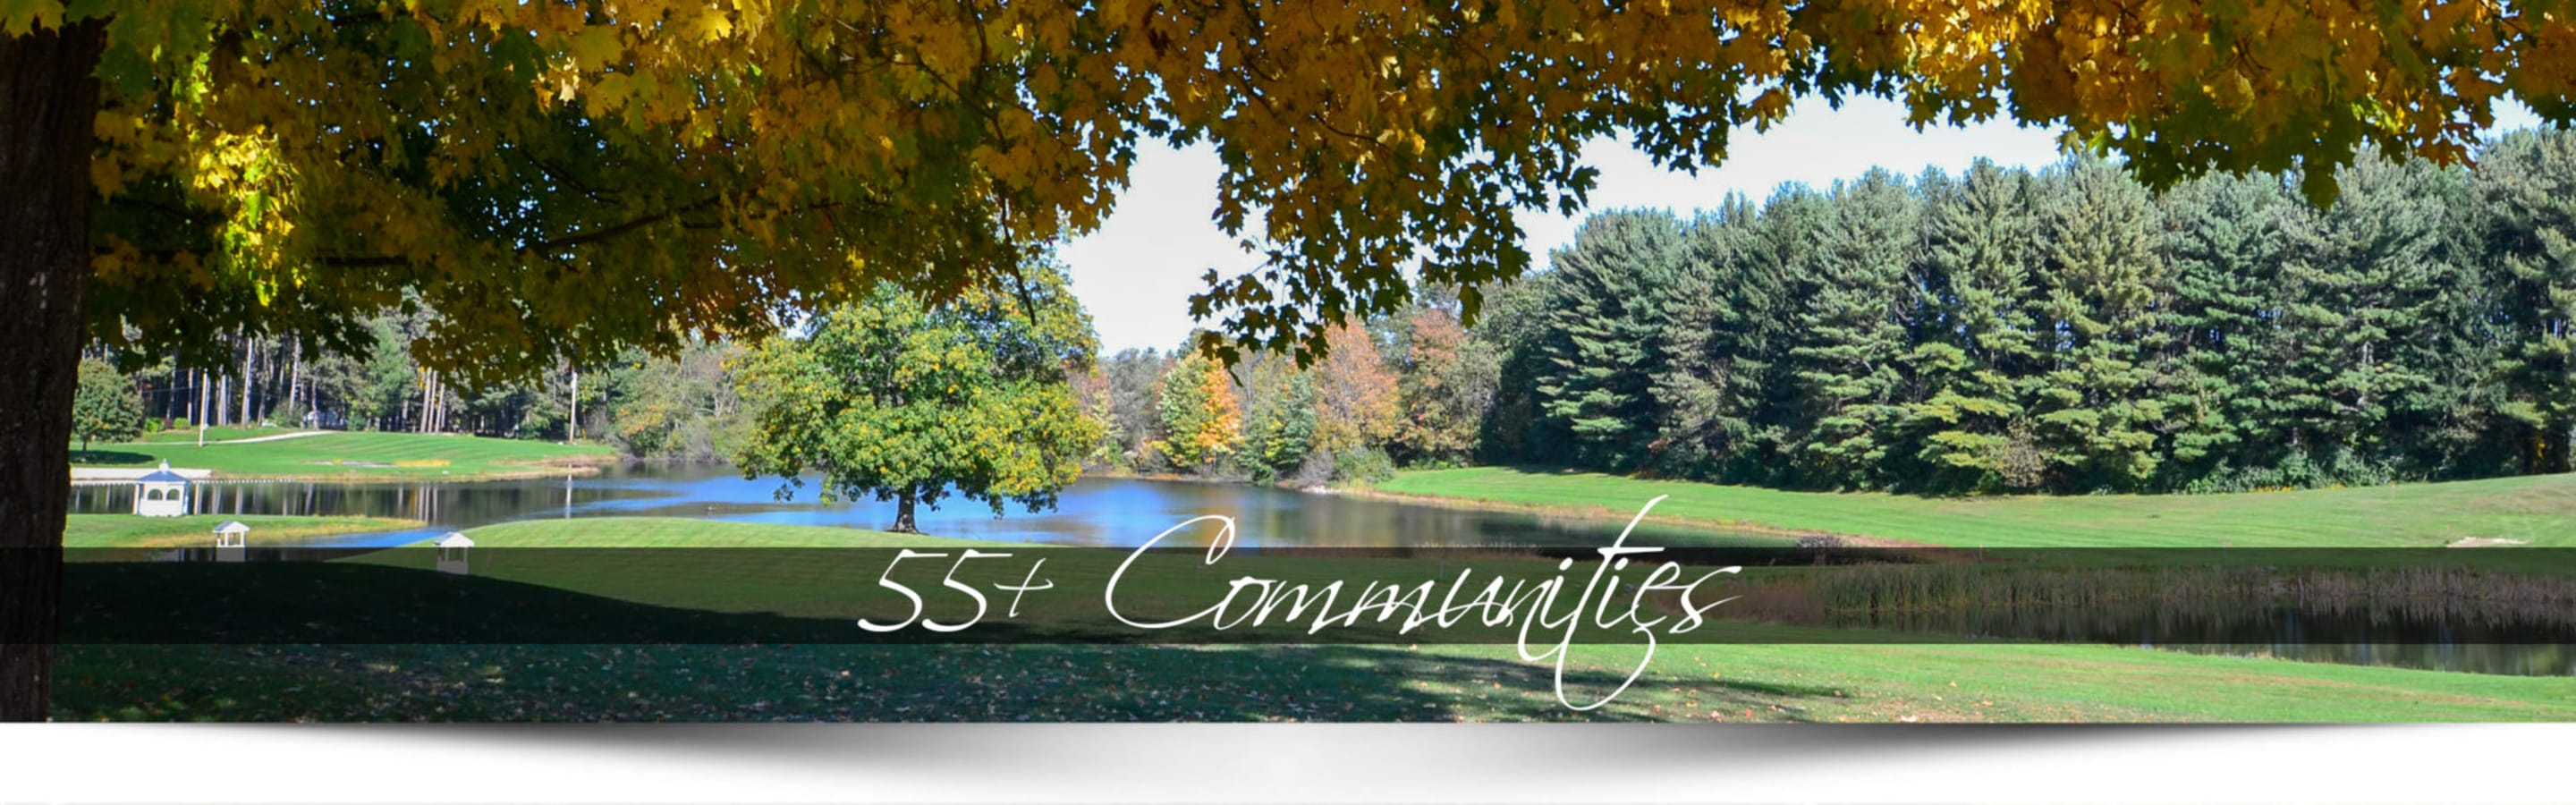 """Landscape of a lake and trees with text that reads """"55+ Communities"""""""